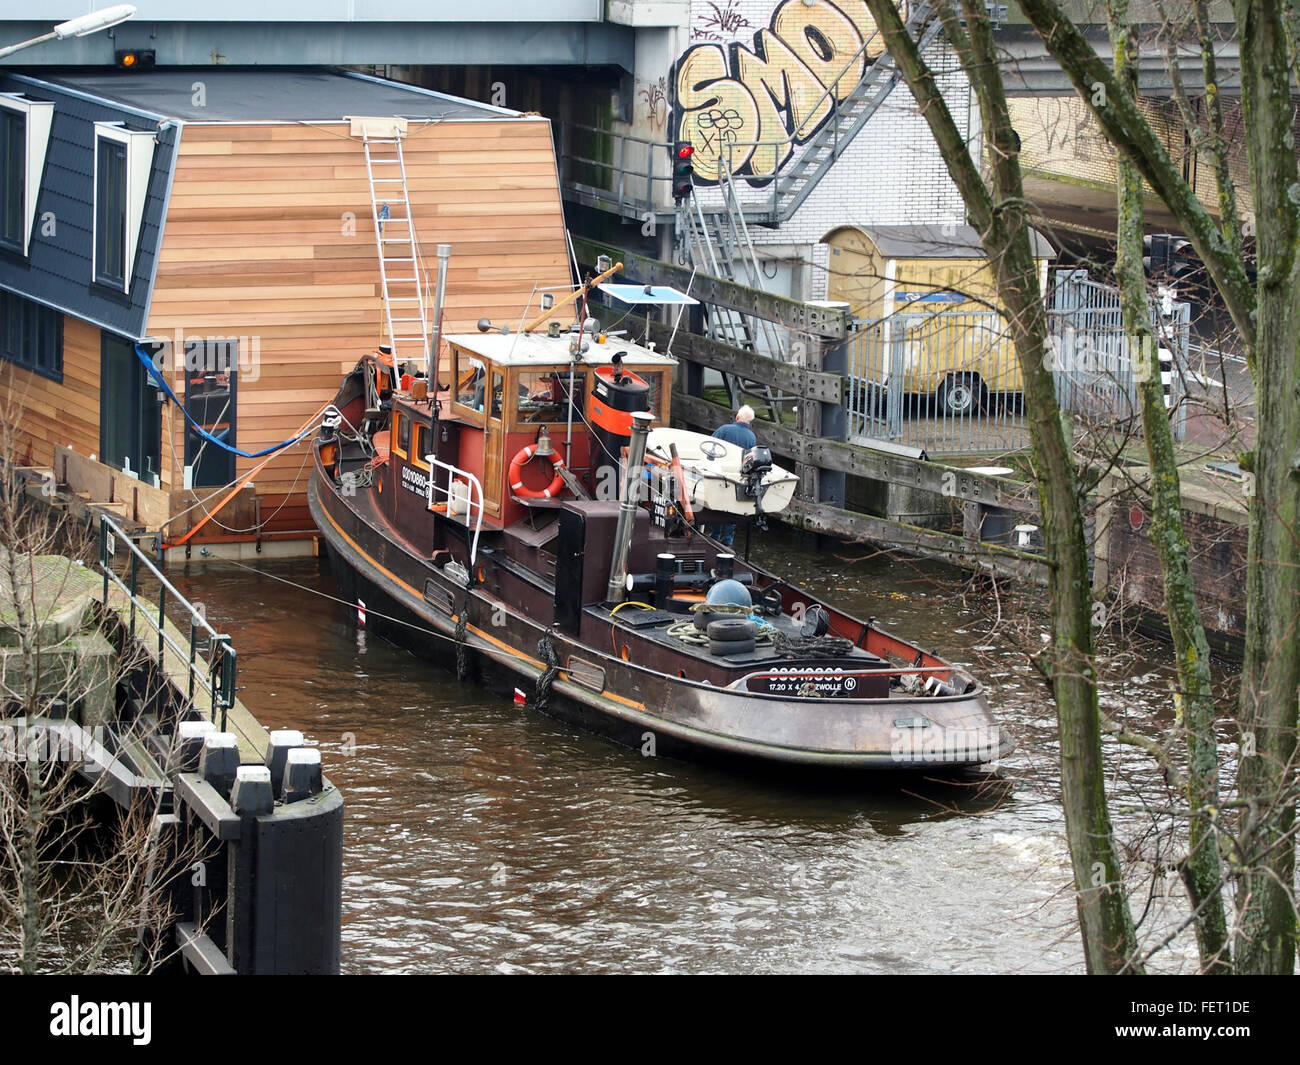 Housboat moved by Wiljo ENI 03010860 pic3 - Stock Image